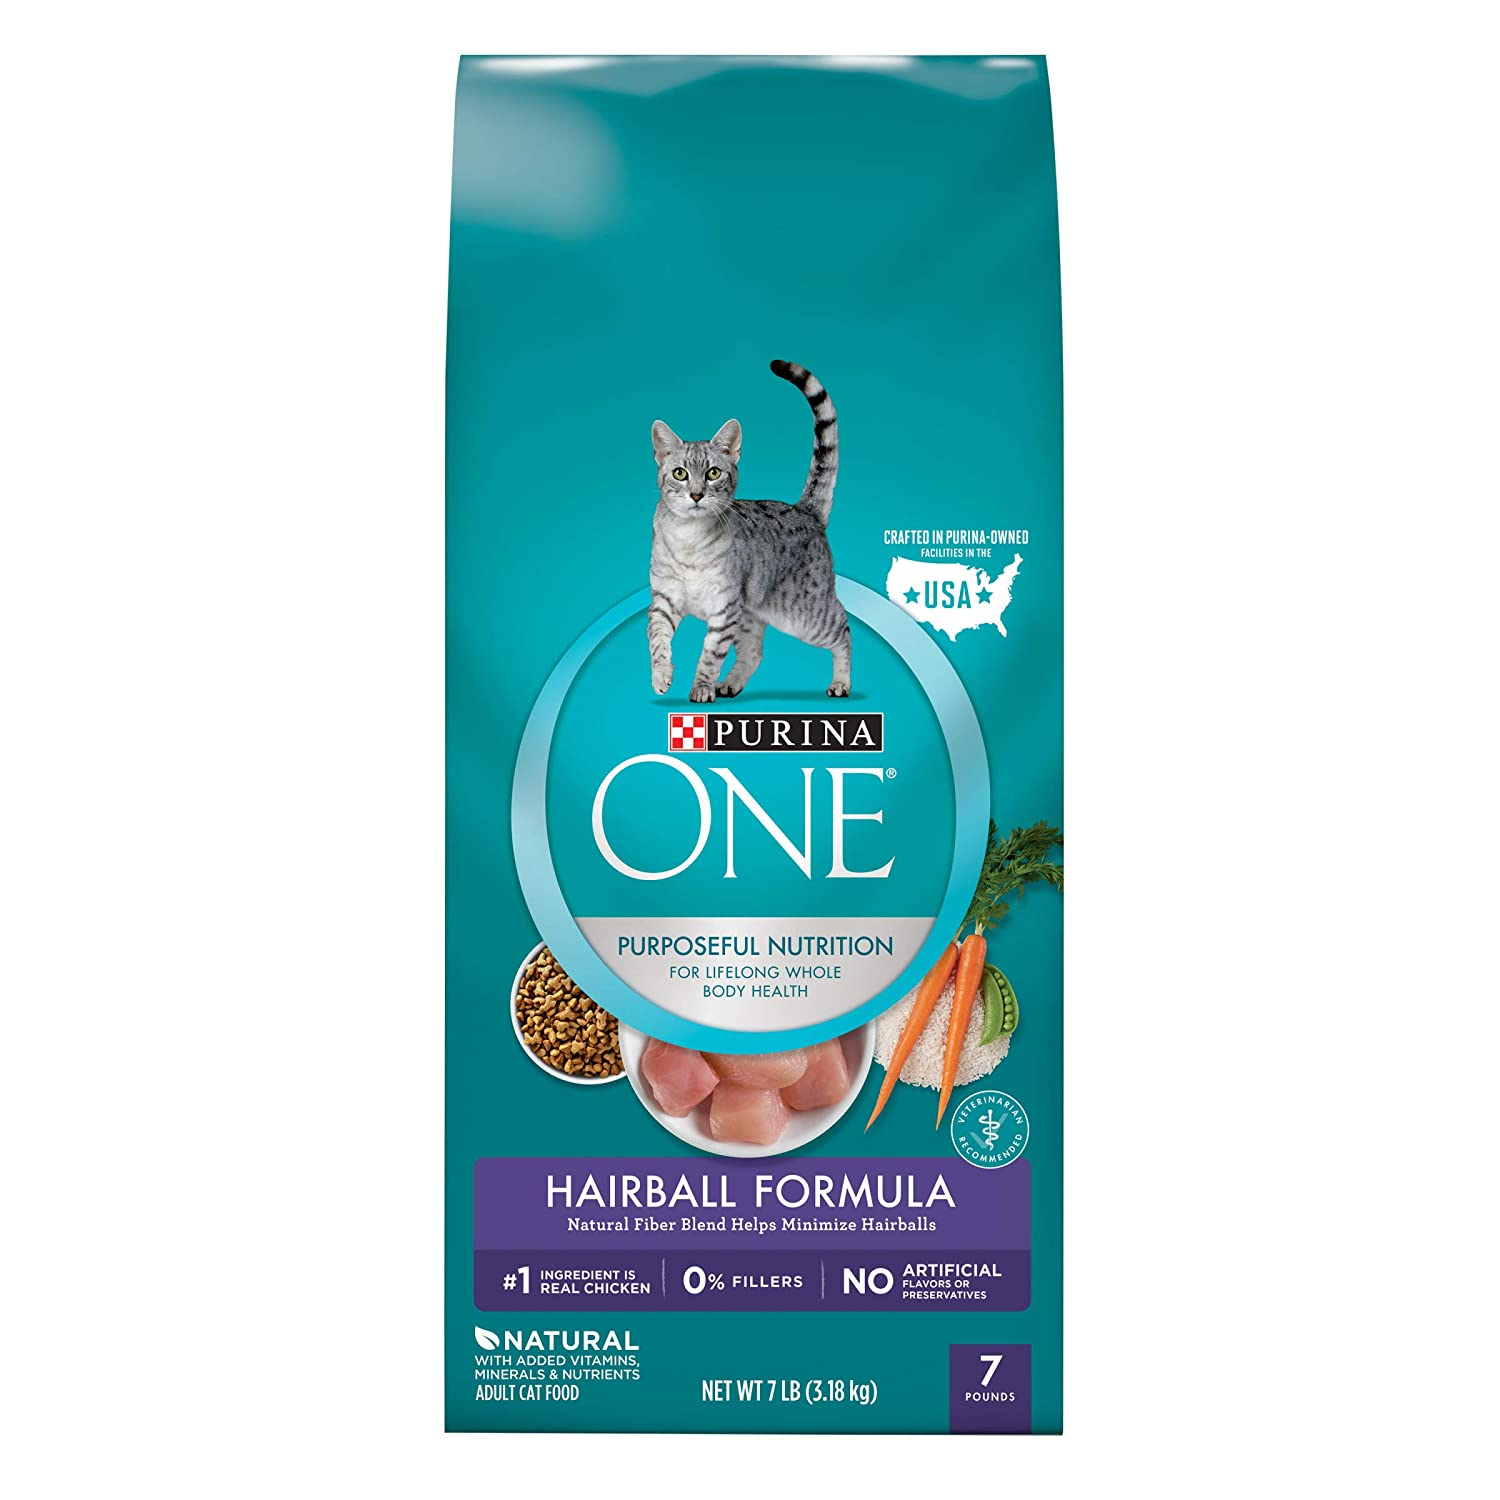 7 LB Bag Purina ONE Dry Cat Food, Hairball Formula, 7-Pound Bag, Pack of 1